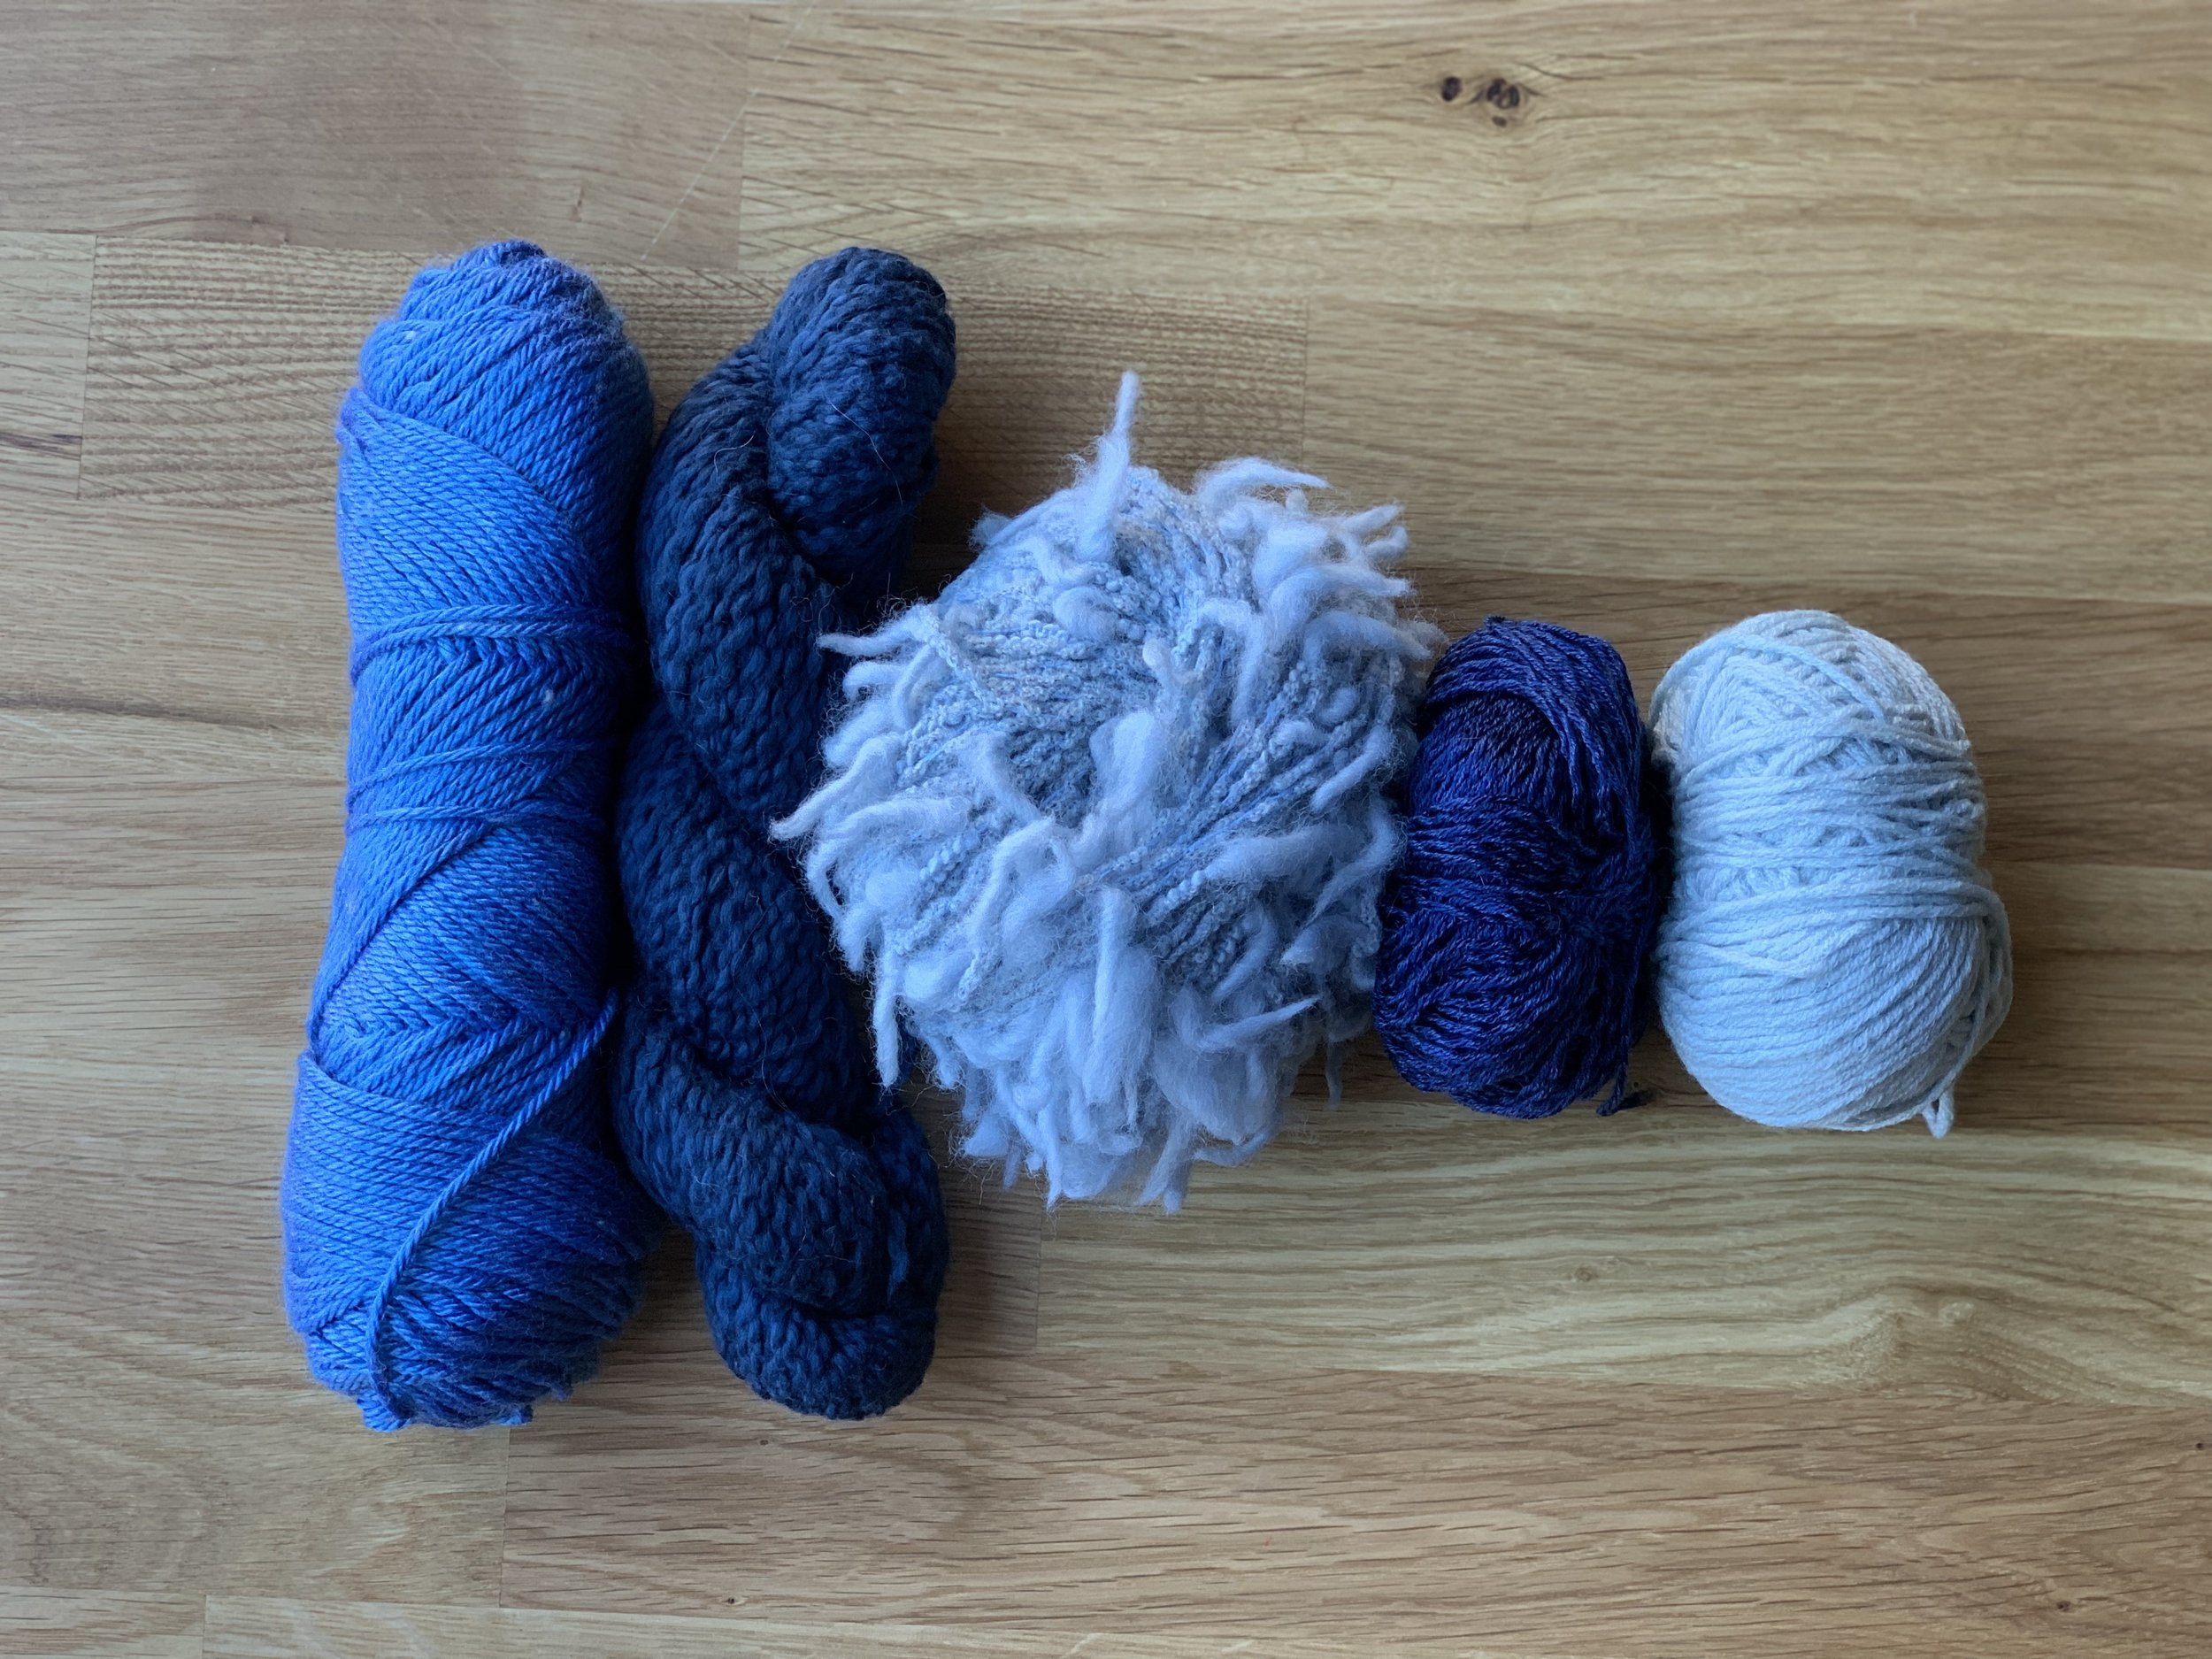 indigo yarn kit.jpg